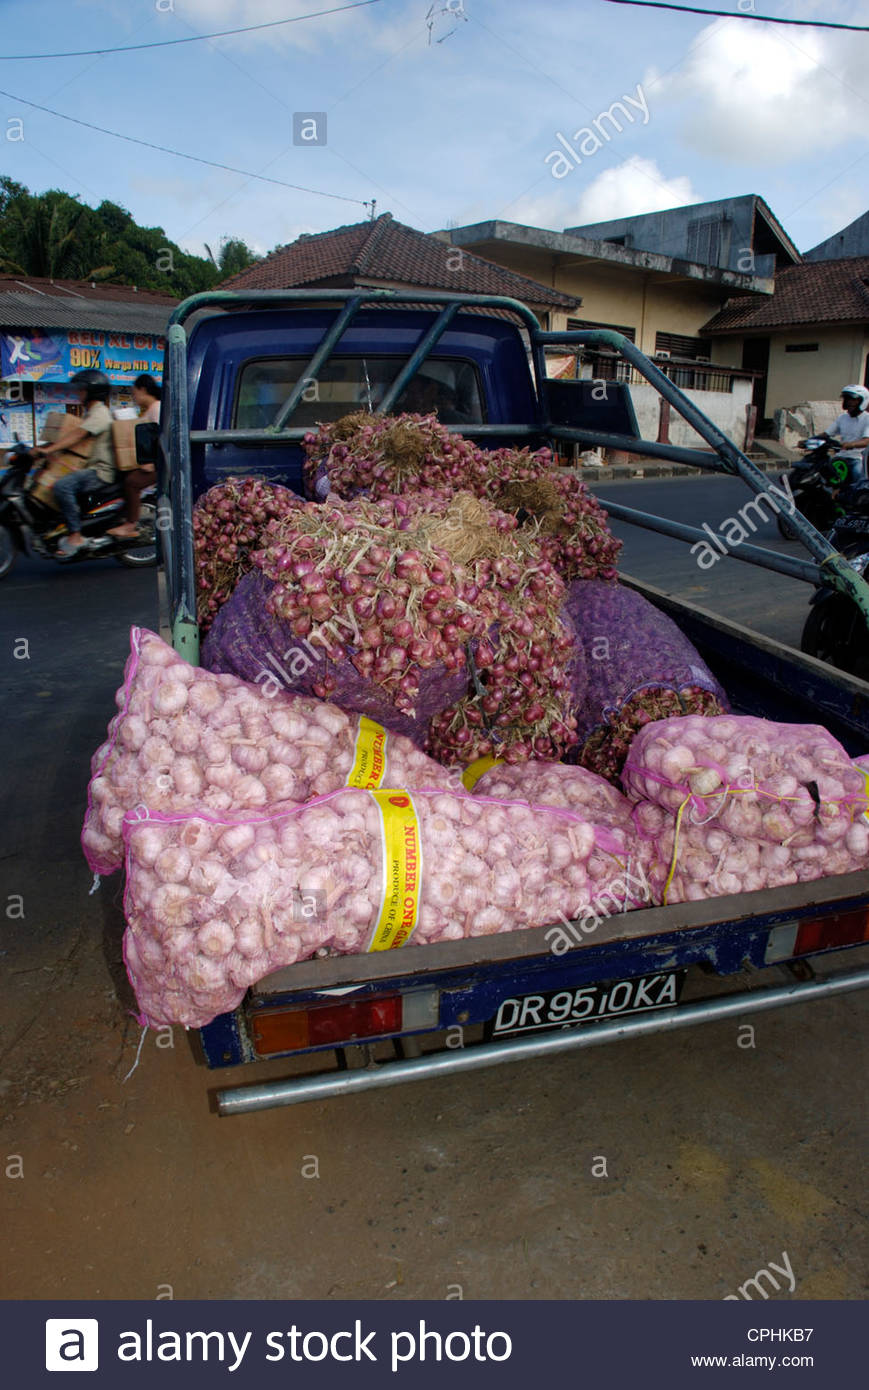 Imported Chinese garlic in sacks and locally grown shallots in back of pickup truck Masbagik Lombok Timur NTB Indonesia - Stock Image